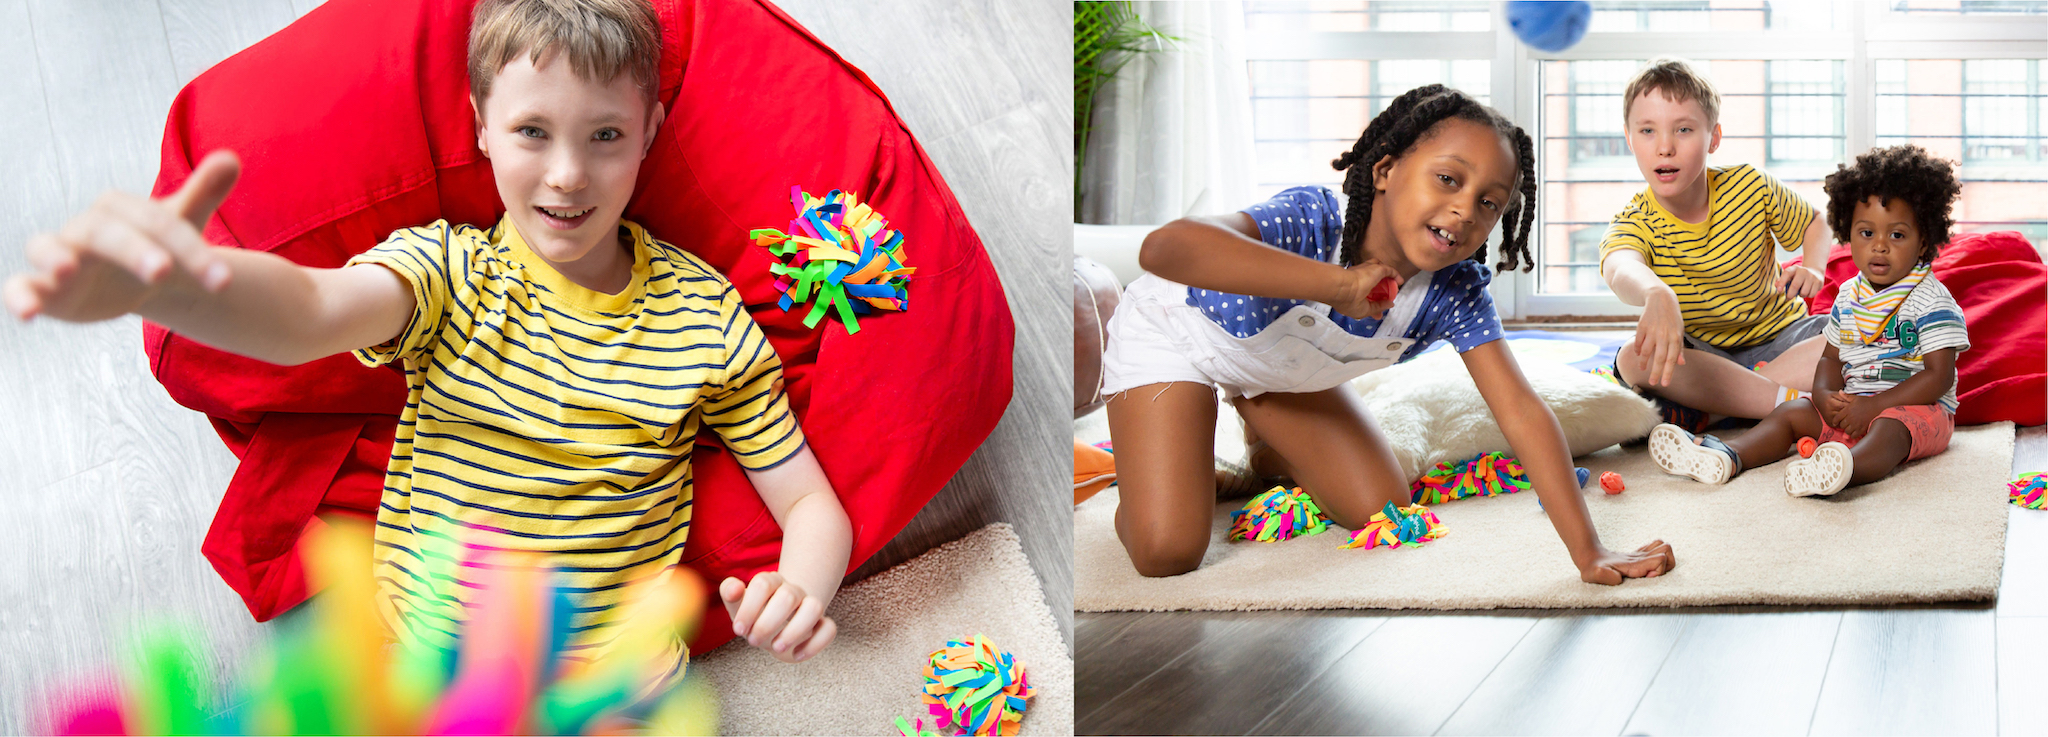 Kids playing with sensory toys